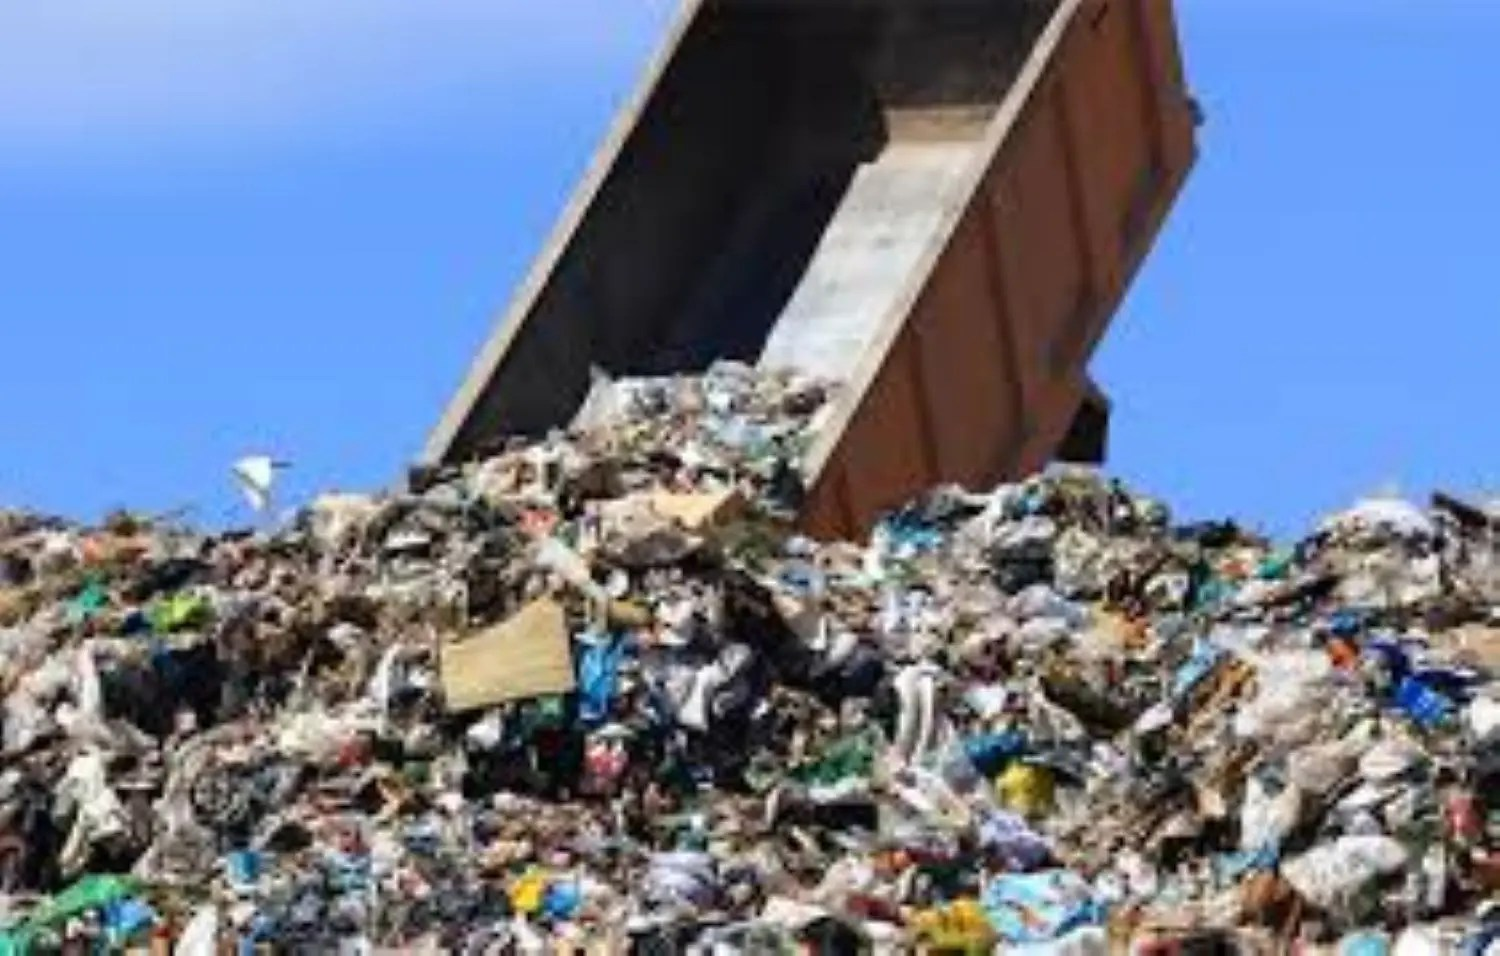 Experts converge to discuss ways of turning waste to wealth in Lagos - Vanguard